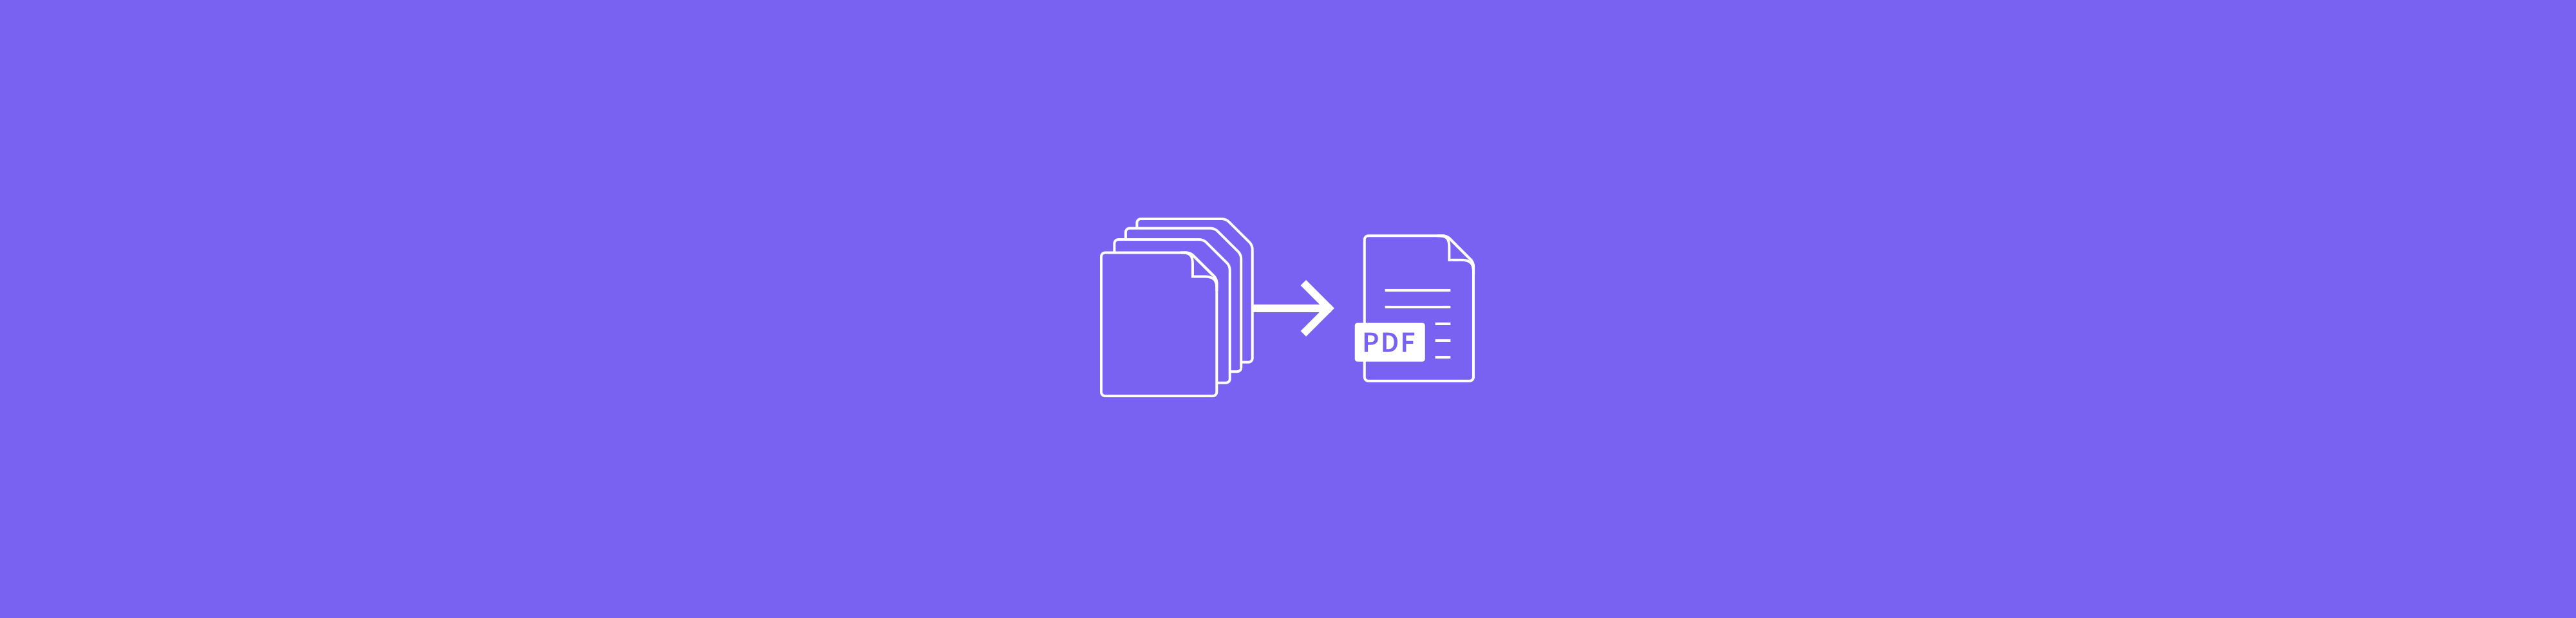 downsizing pdf files online